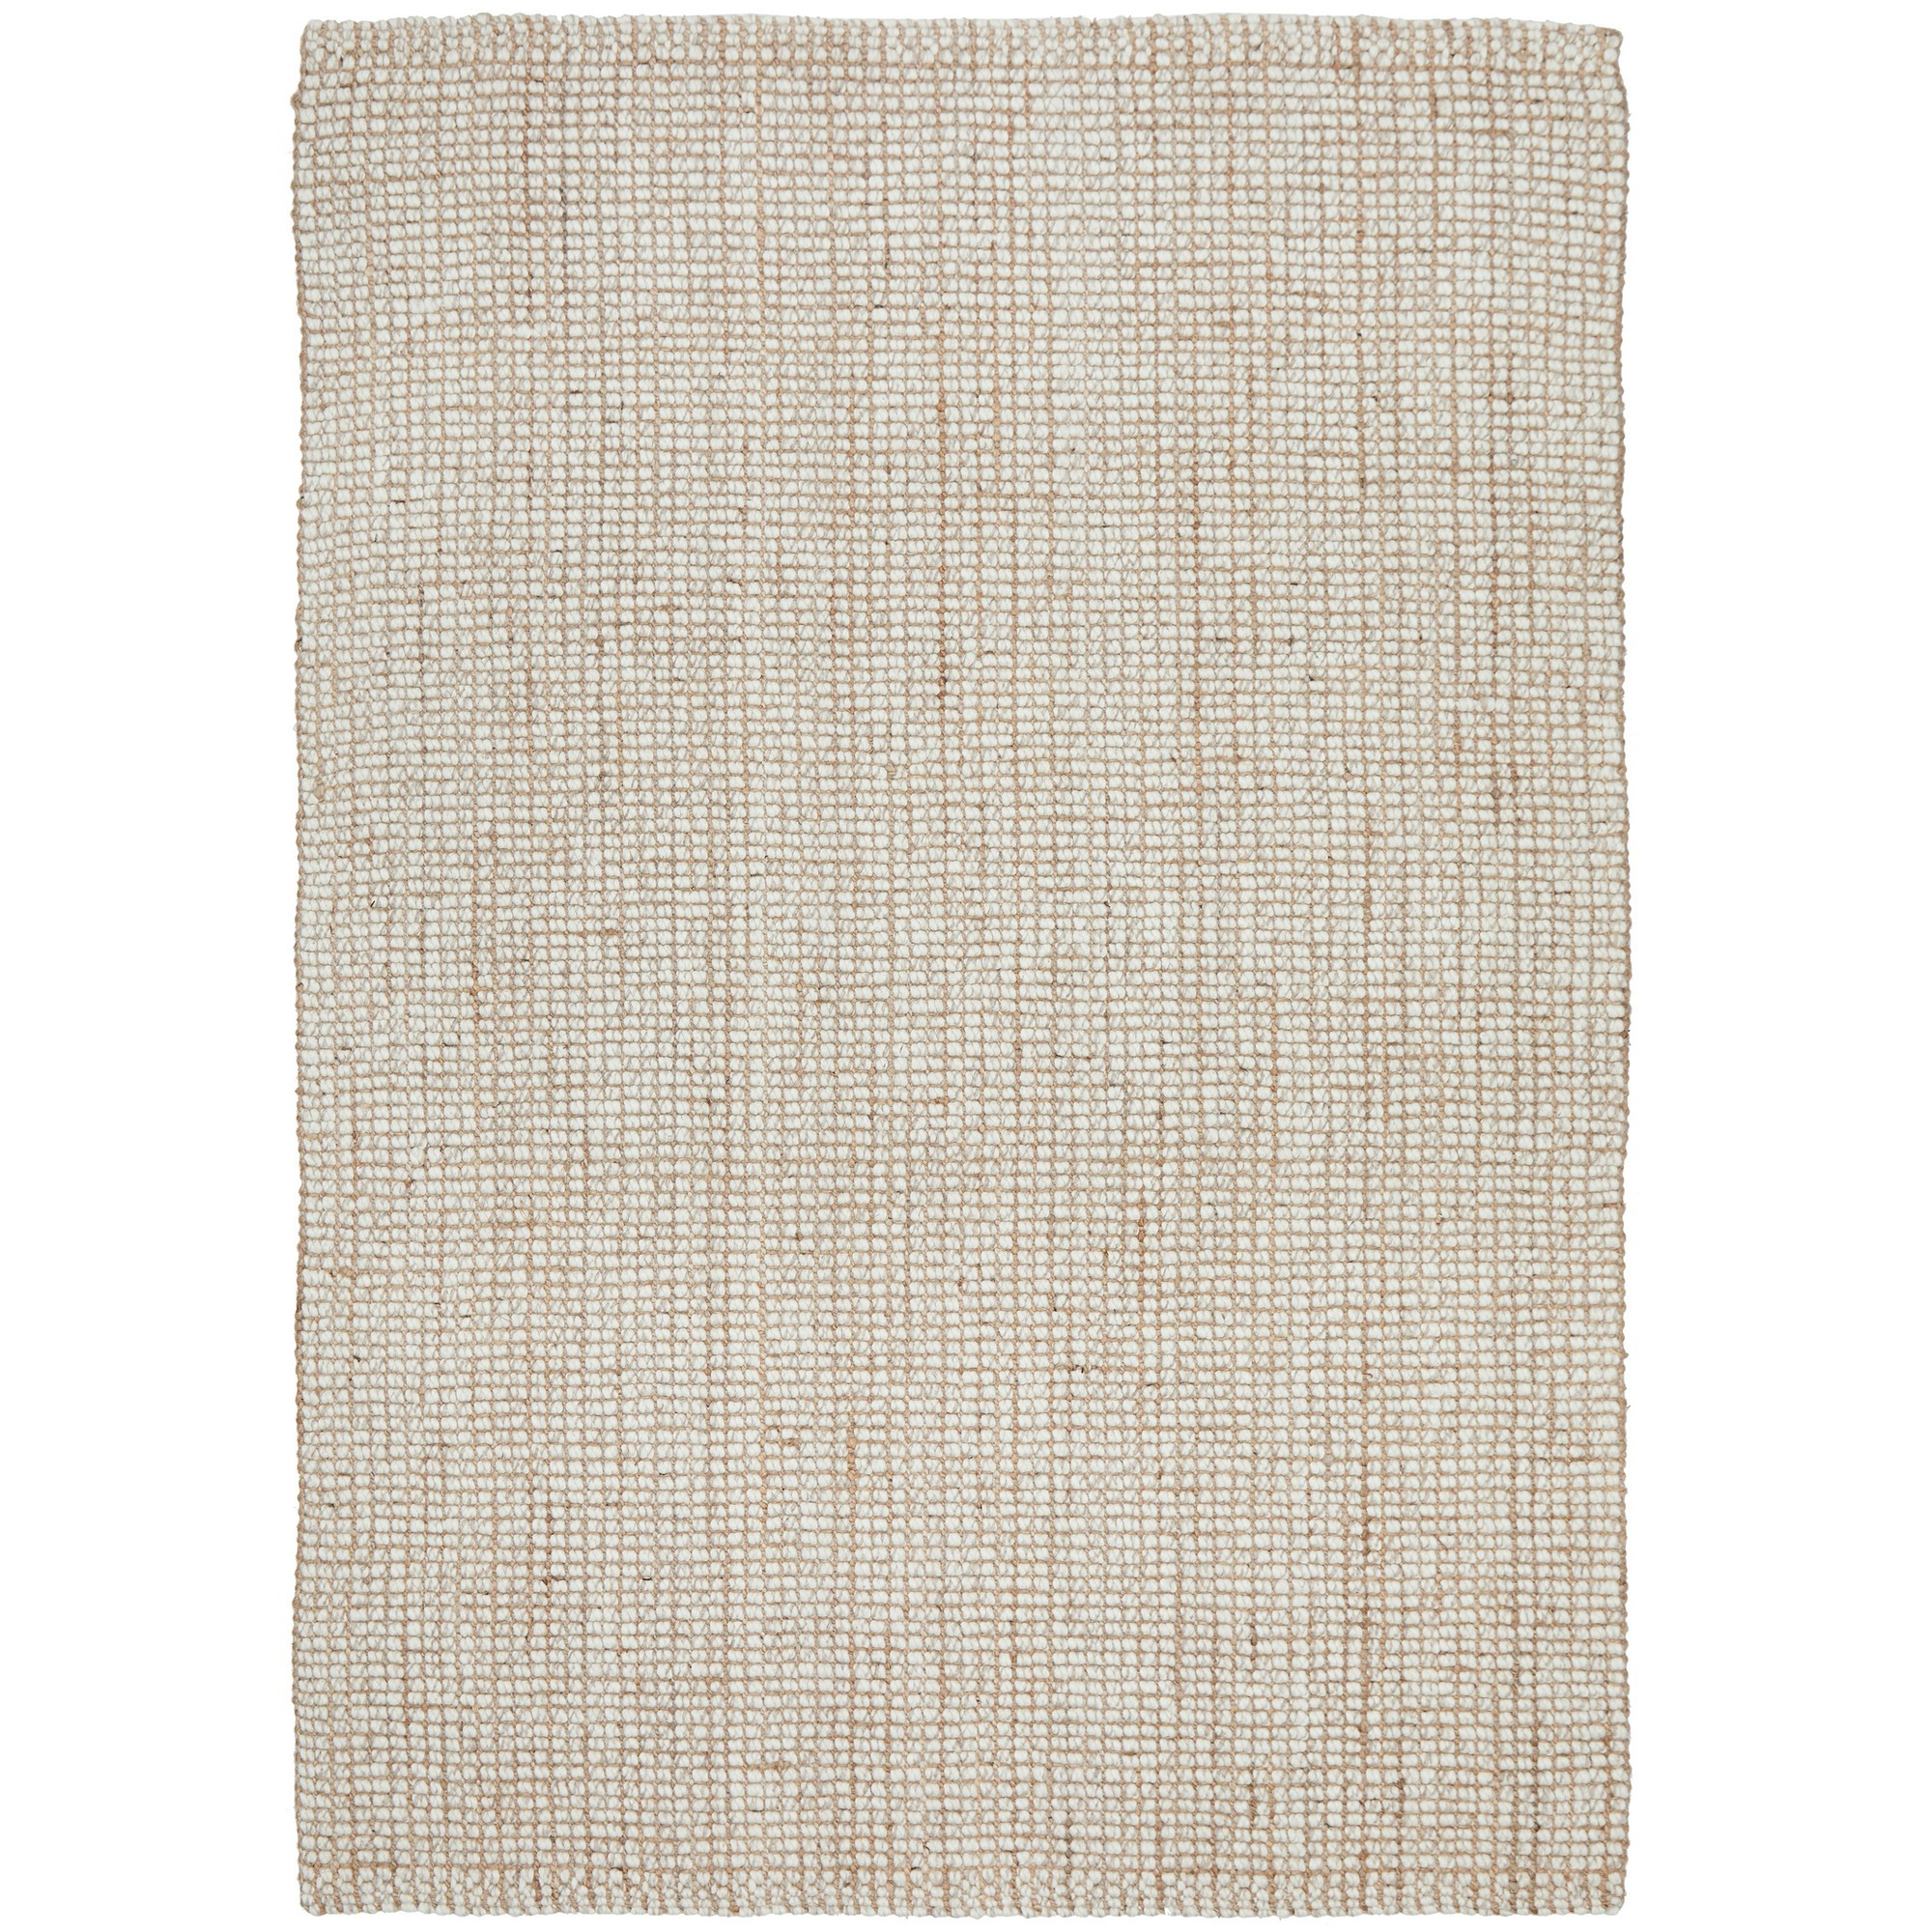 Arabella Hand Loomed Wool & Jute Rug, 400x300cm, Cream / Natural